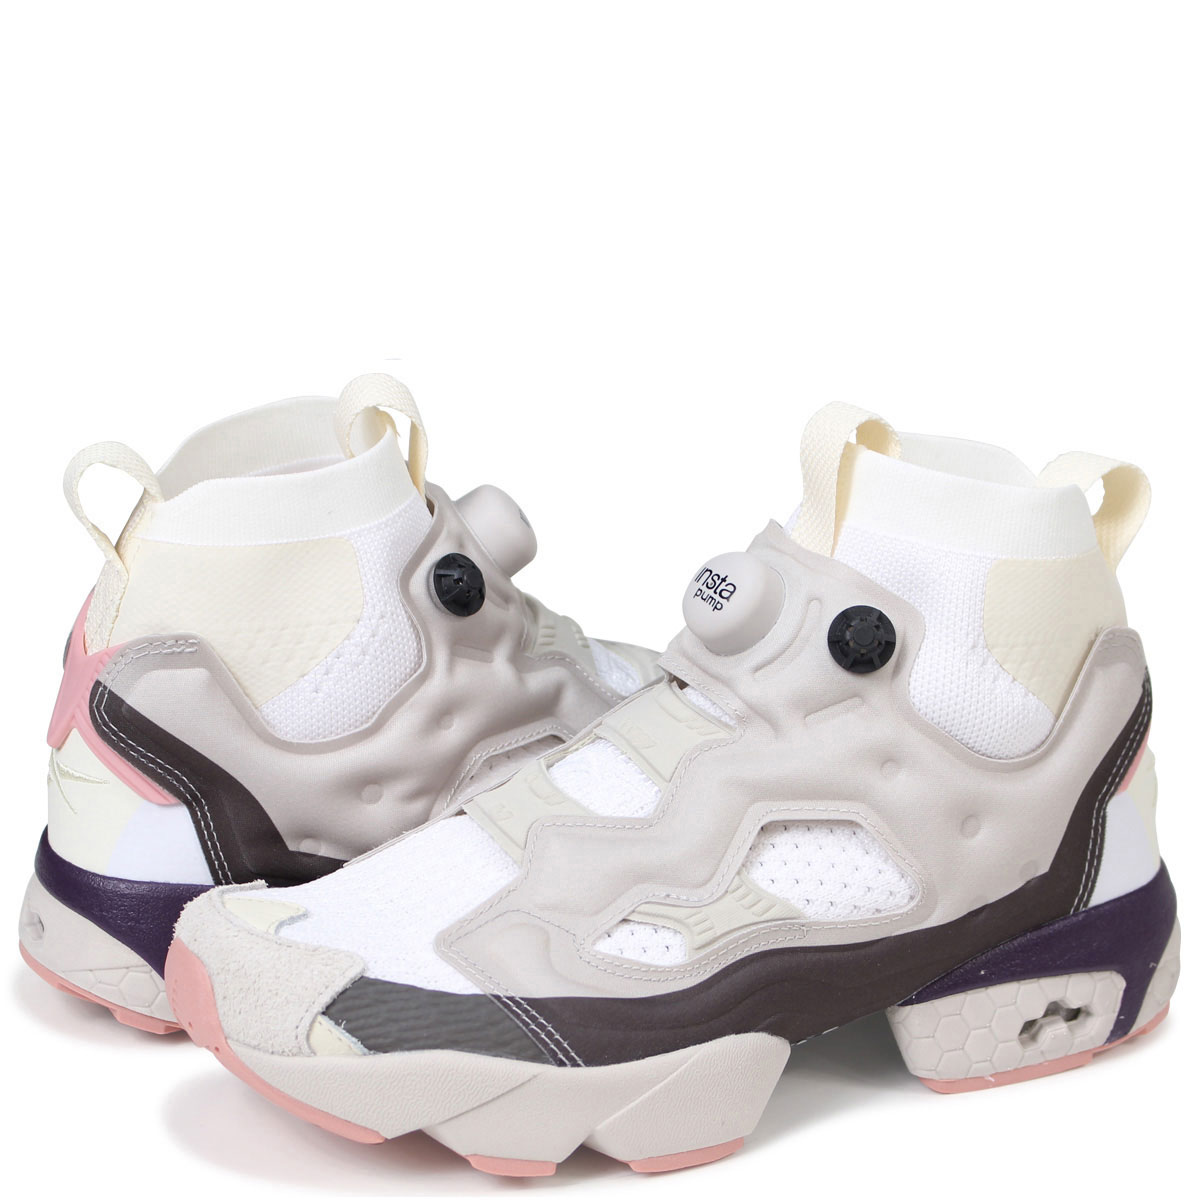 ca684b0ec515 Reebok INSTAPUMP FURY ULTK DP リーボックポンプフューリーメンズレディーススニーカー CM9354 white  load  planned Shinnyu load in reservation product 5 19 ...